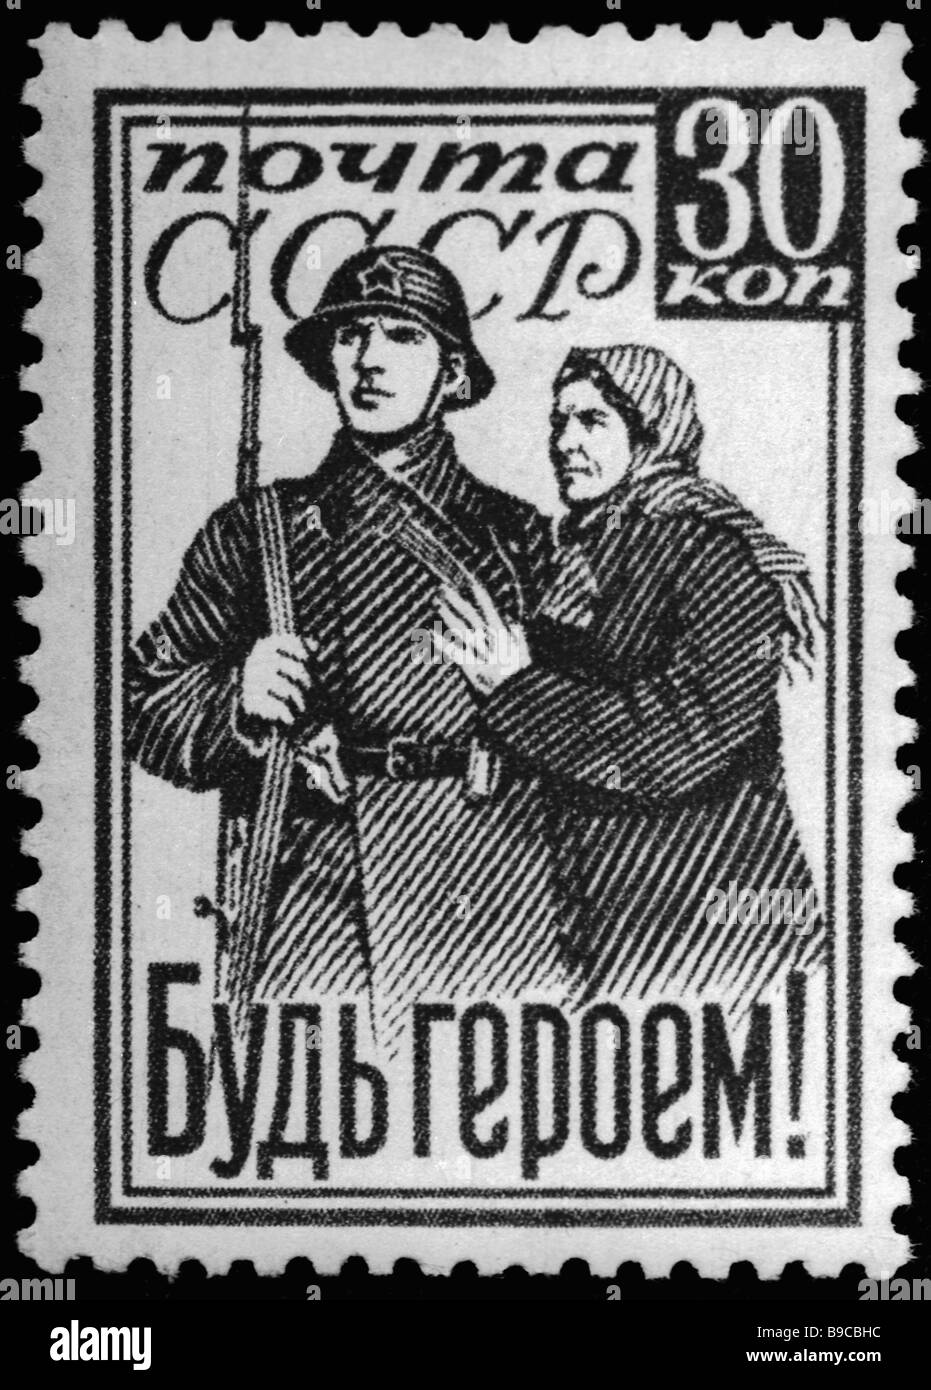 The postal stamp Mother Sees Off Her Soldier Son was issued for the 60th USSR establishment anniversary - Stock Image